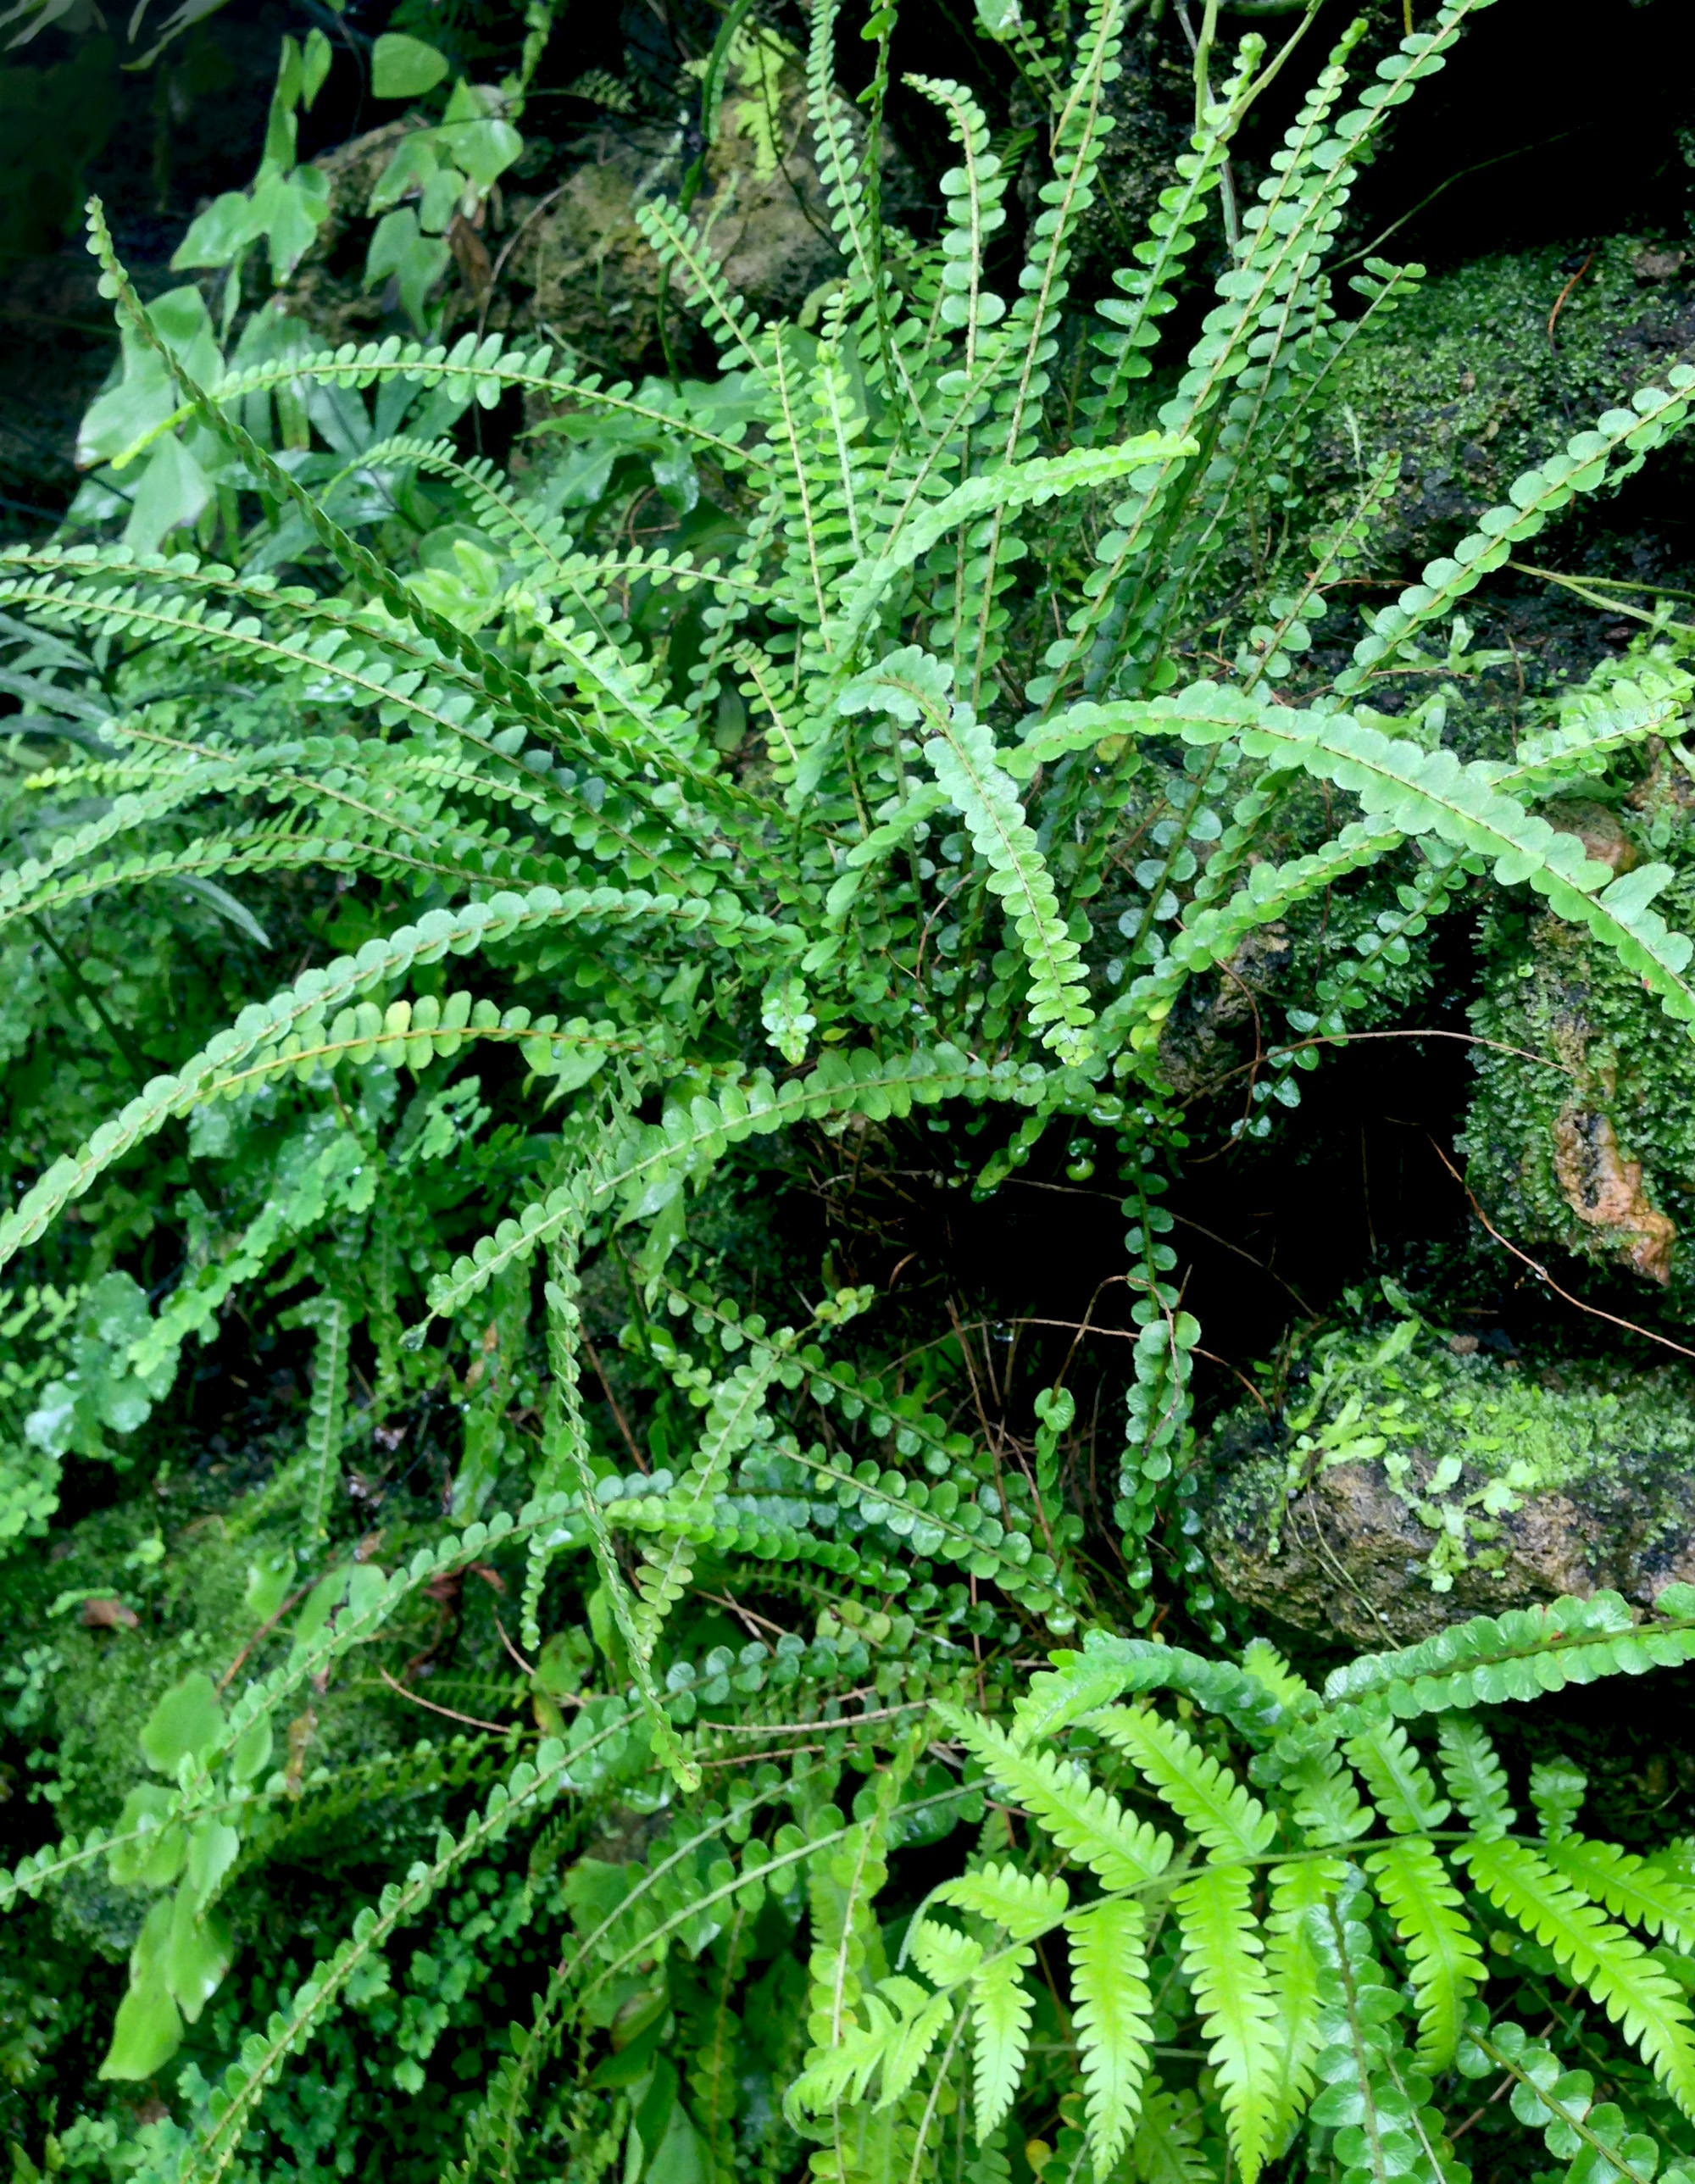 Button fern (Pellaea rotundifolia), Fern room, Scheelea Palm